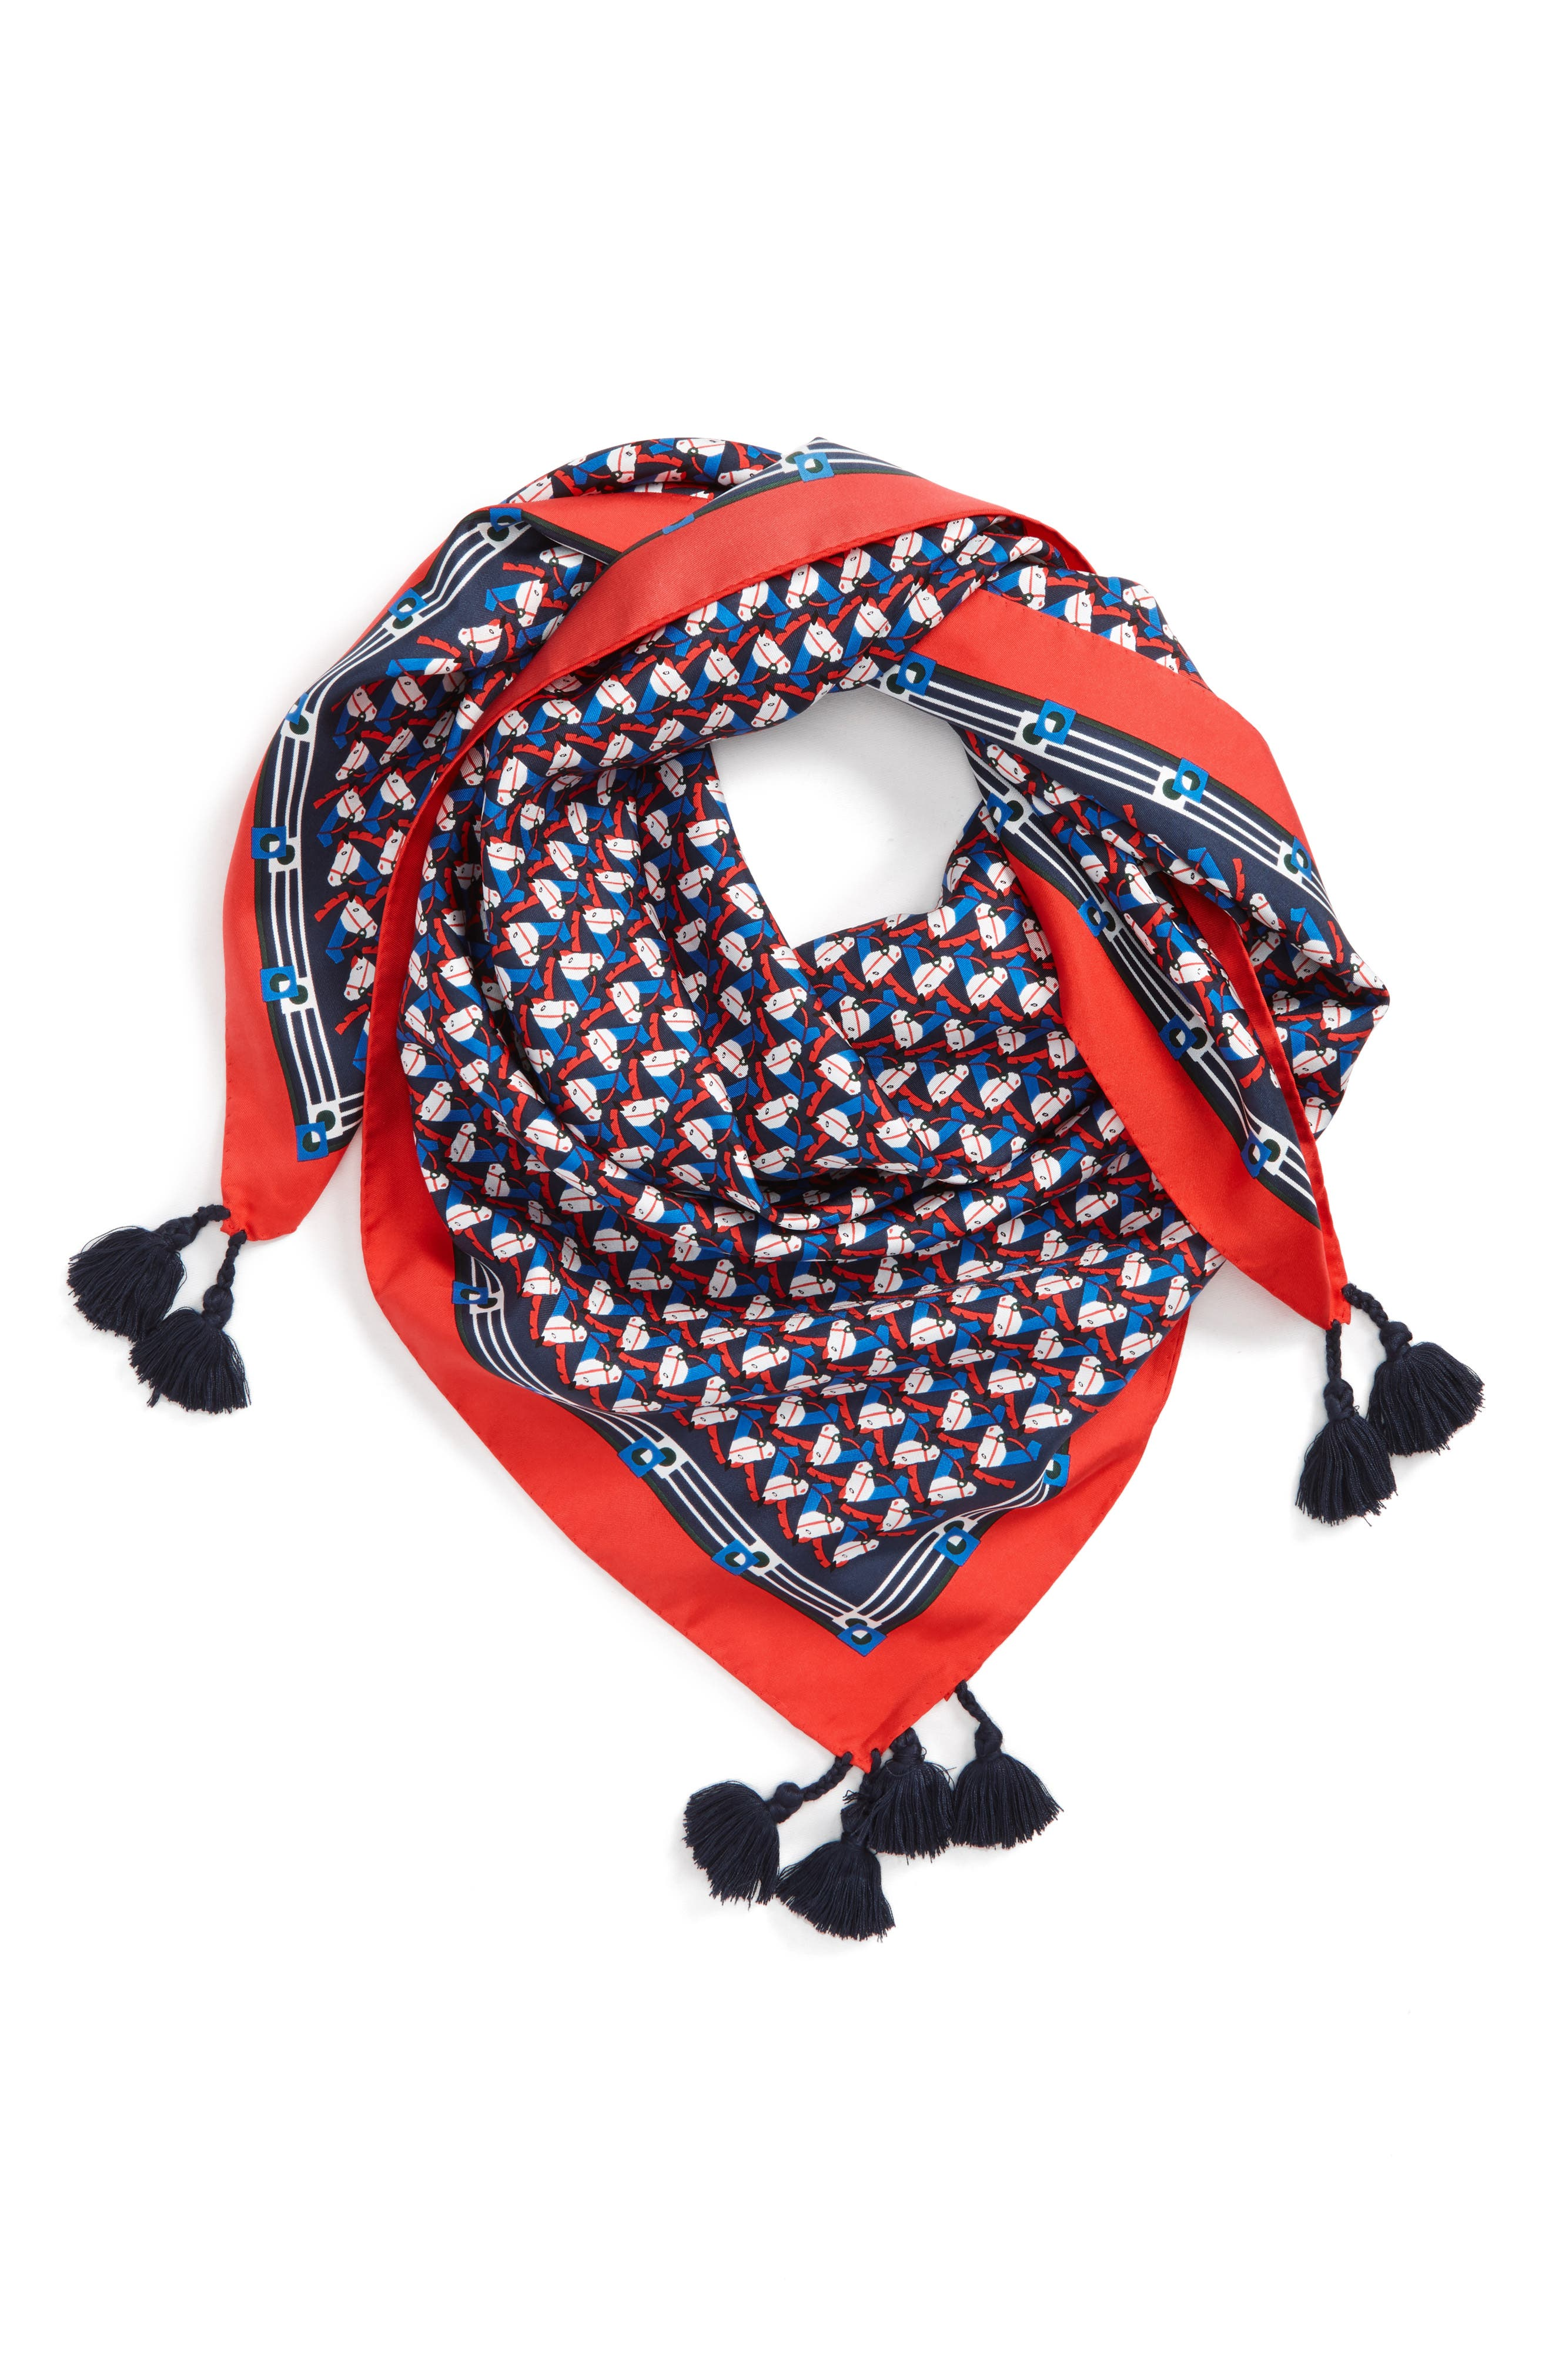 Main Image - Tory Burch Stallion Silk Square Scarf with Tassels